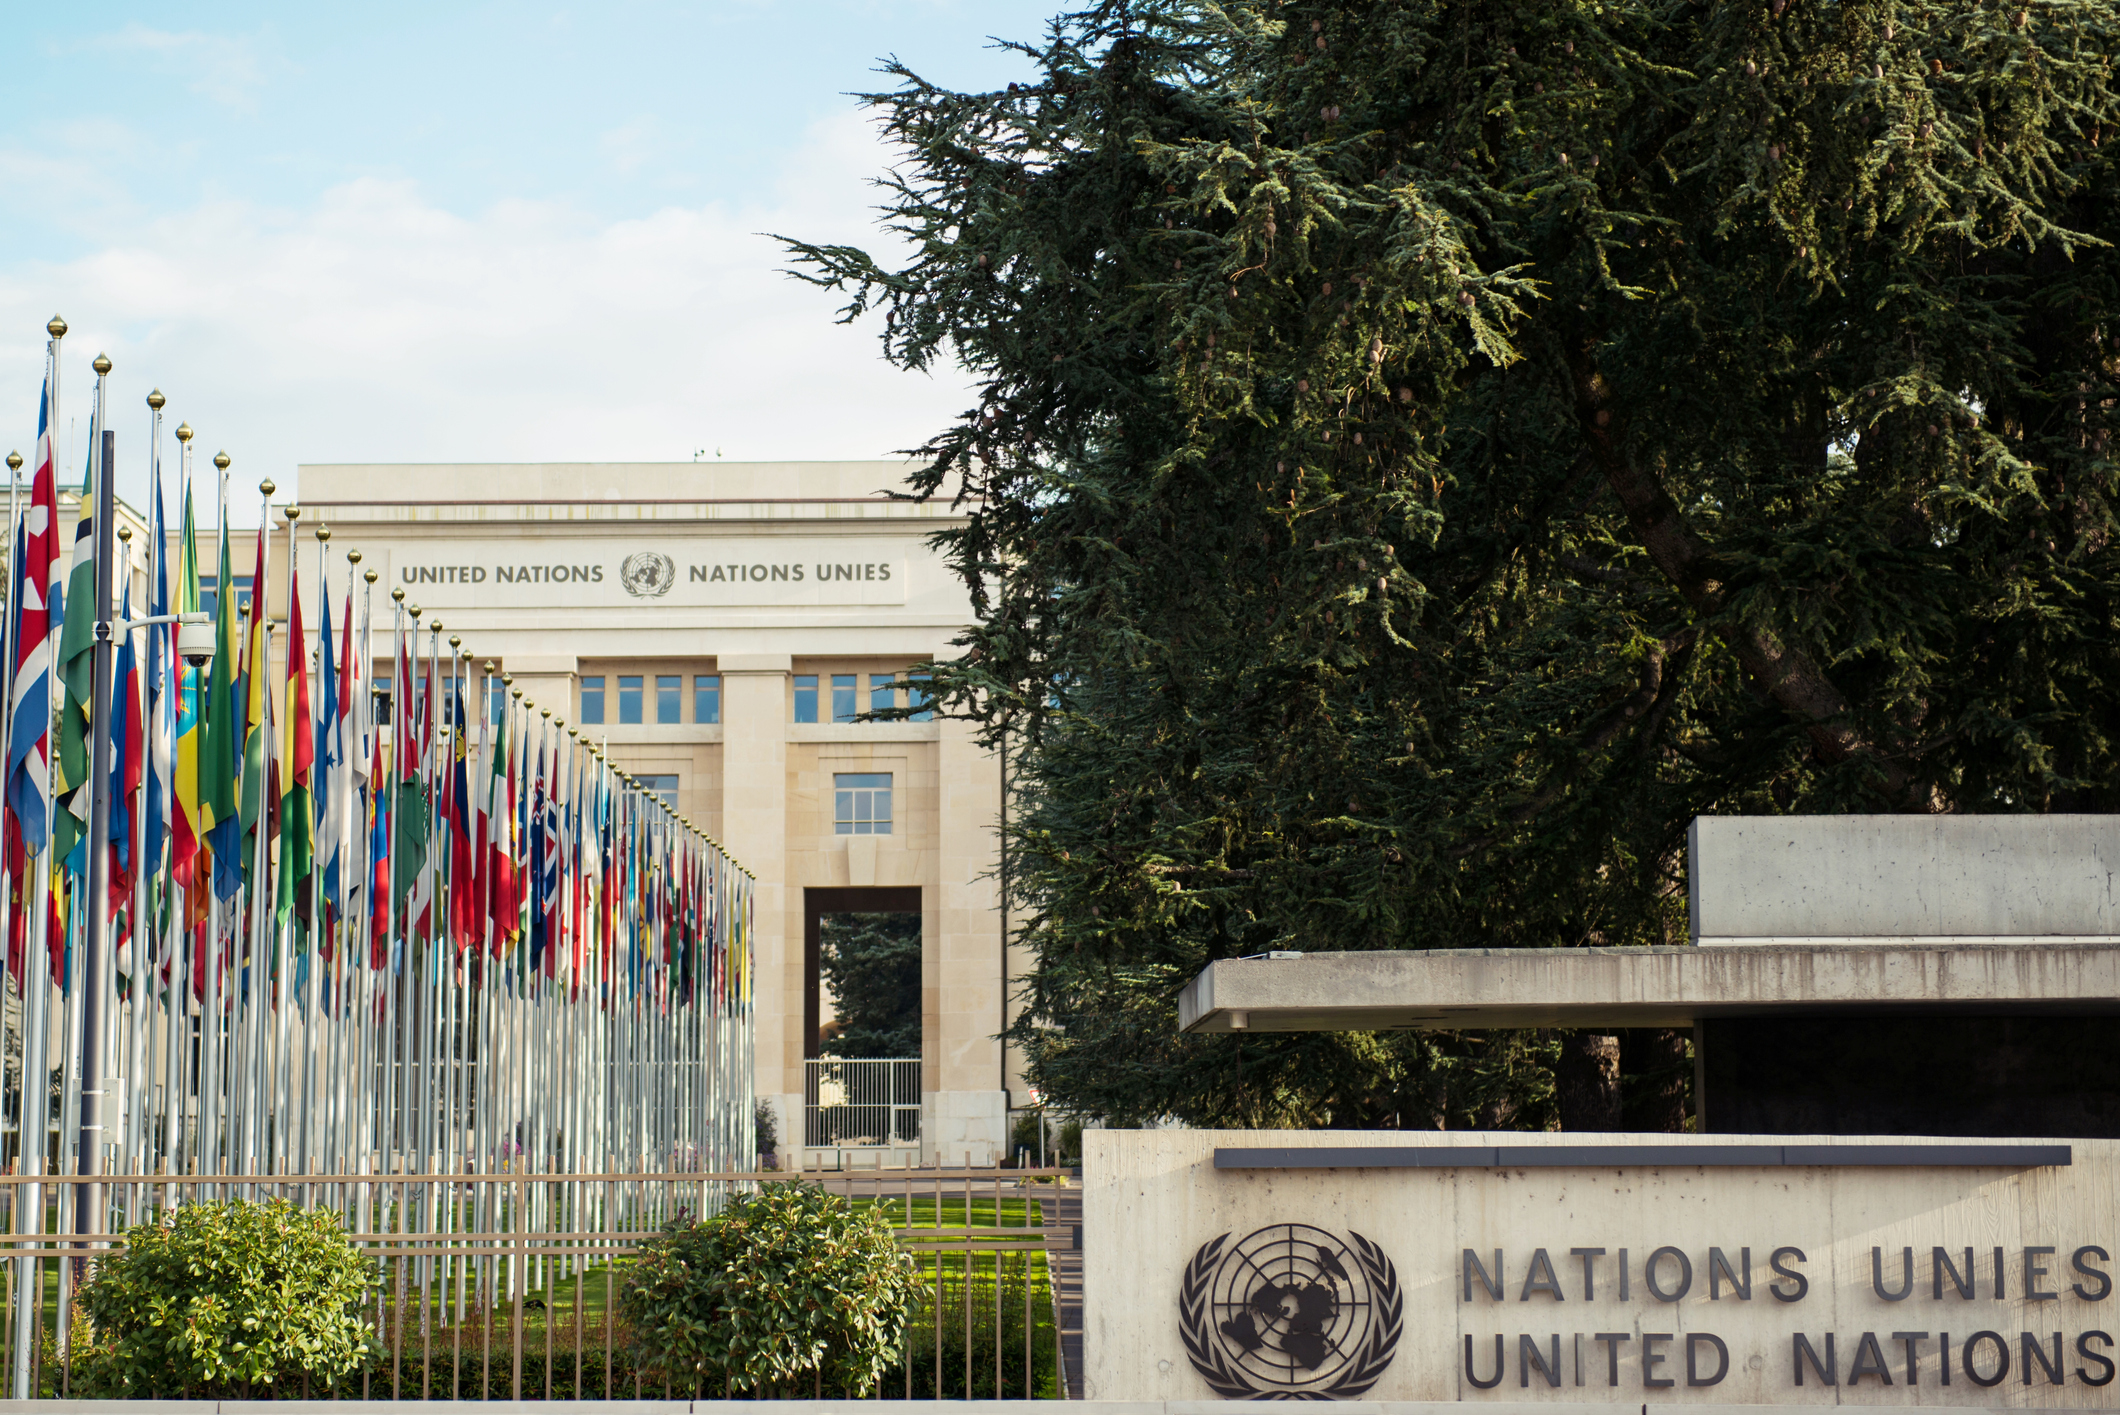 National flags in front of United Nations headquarters in Geneva, Switzerland.